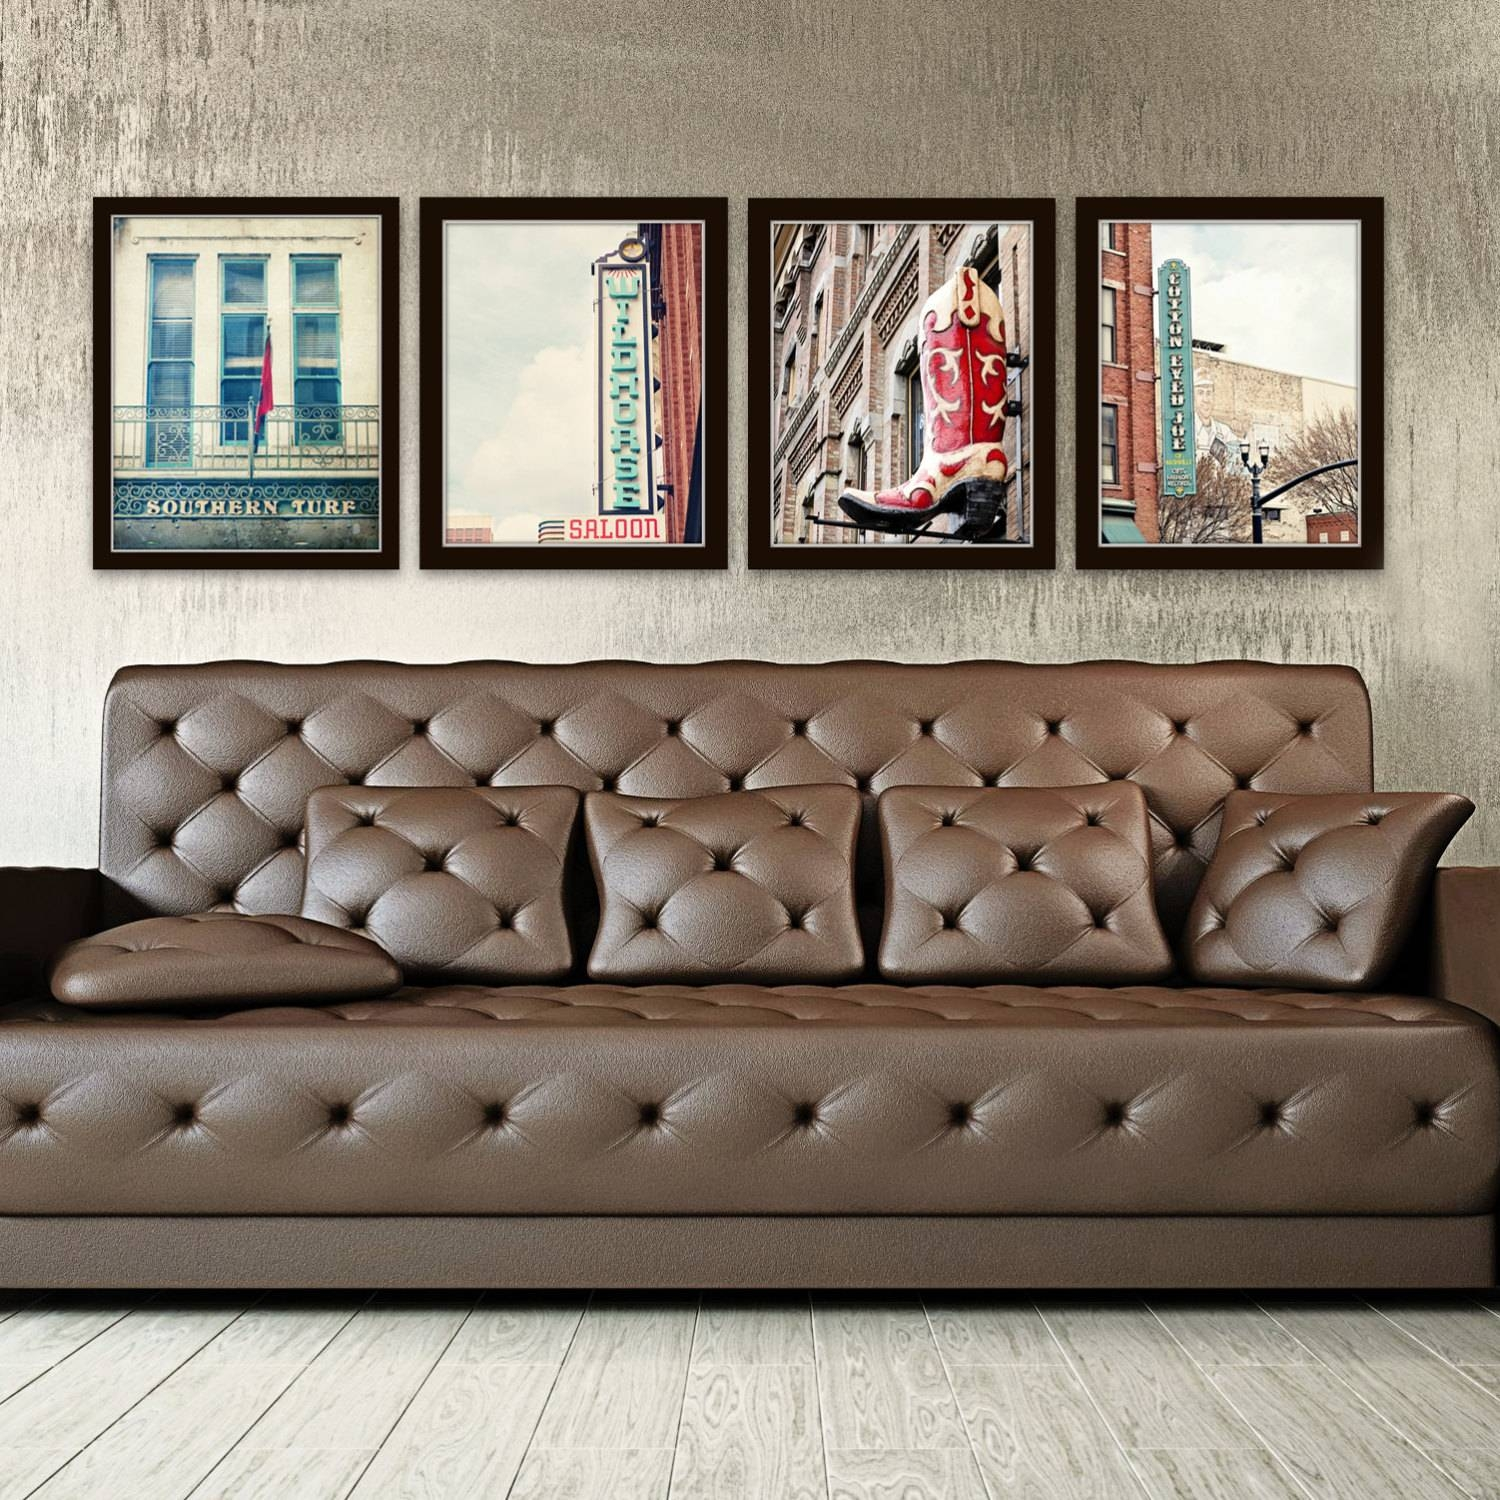 Nashville Wall Art Industrial Decor City Photography Set Of 4 For Recent Vintage Industrial Wall Art (View 4 of 20)